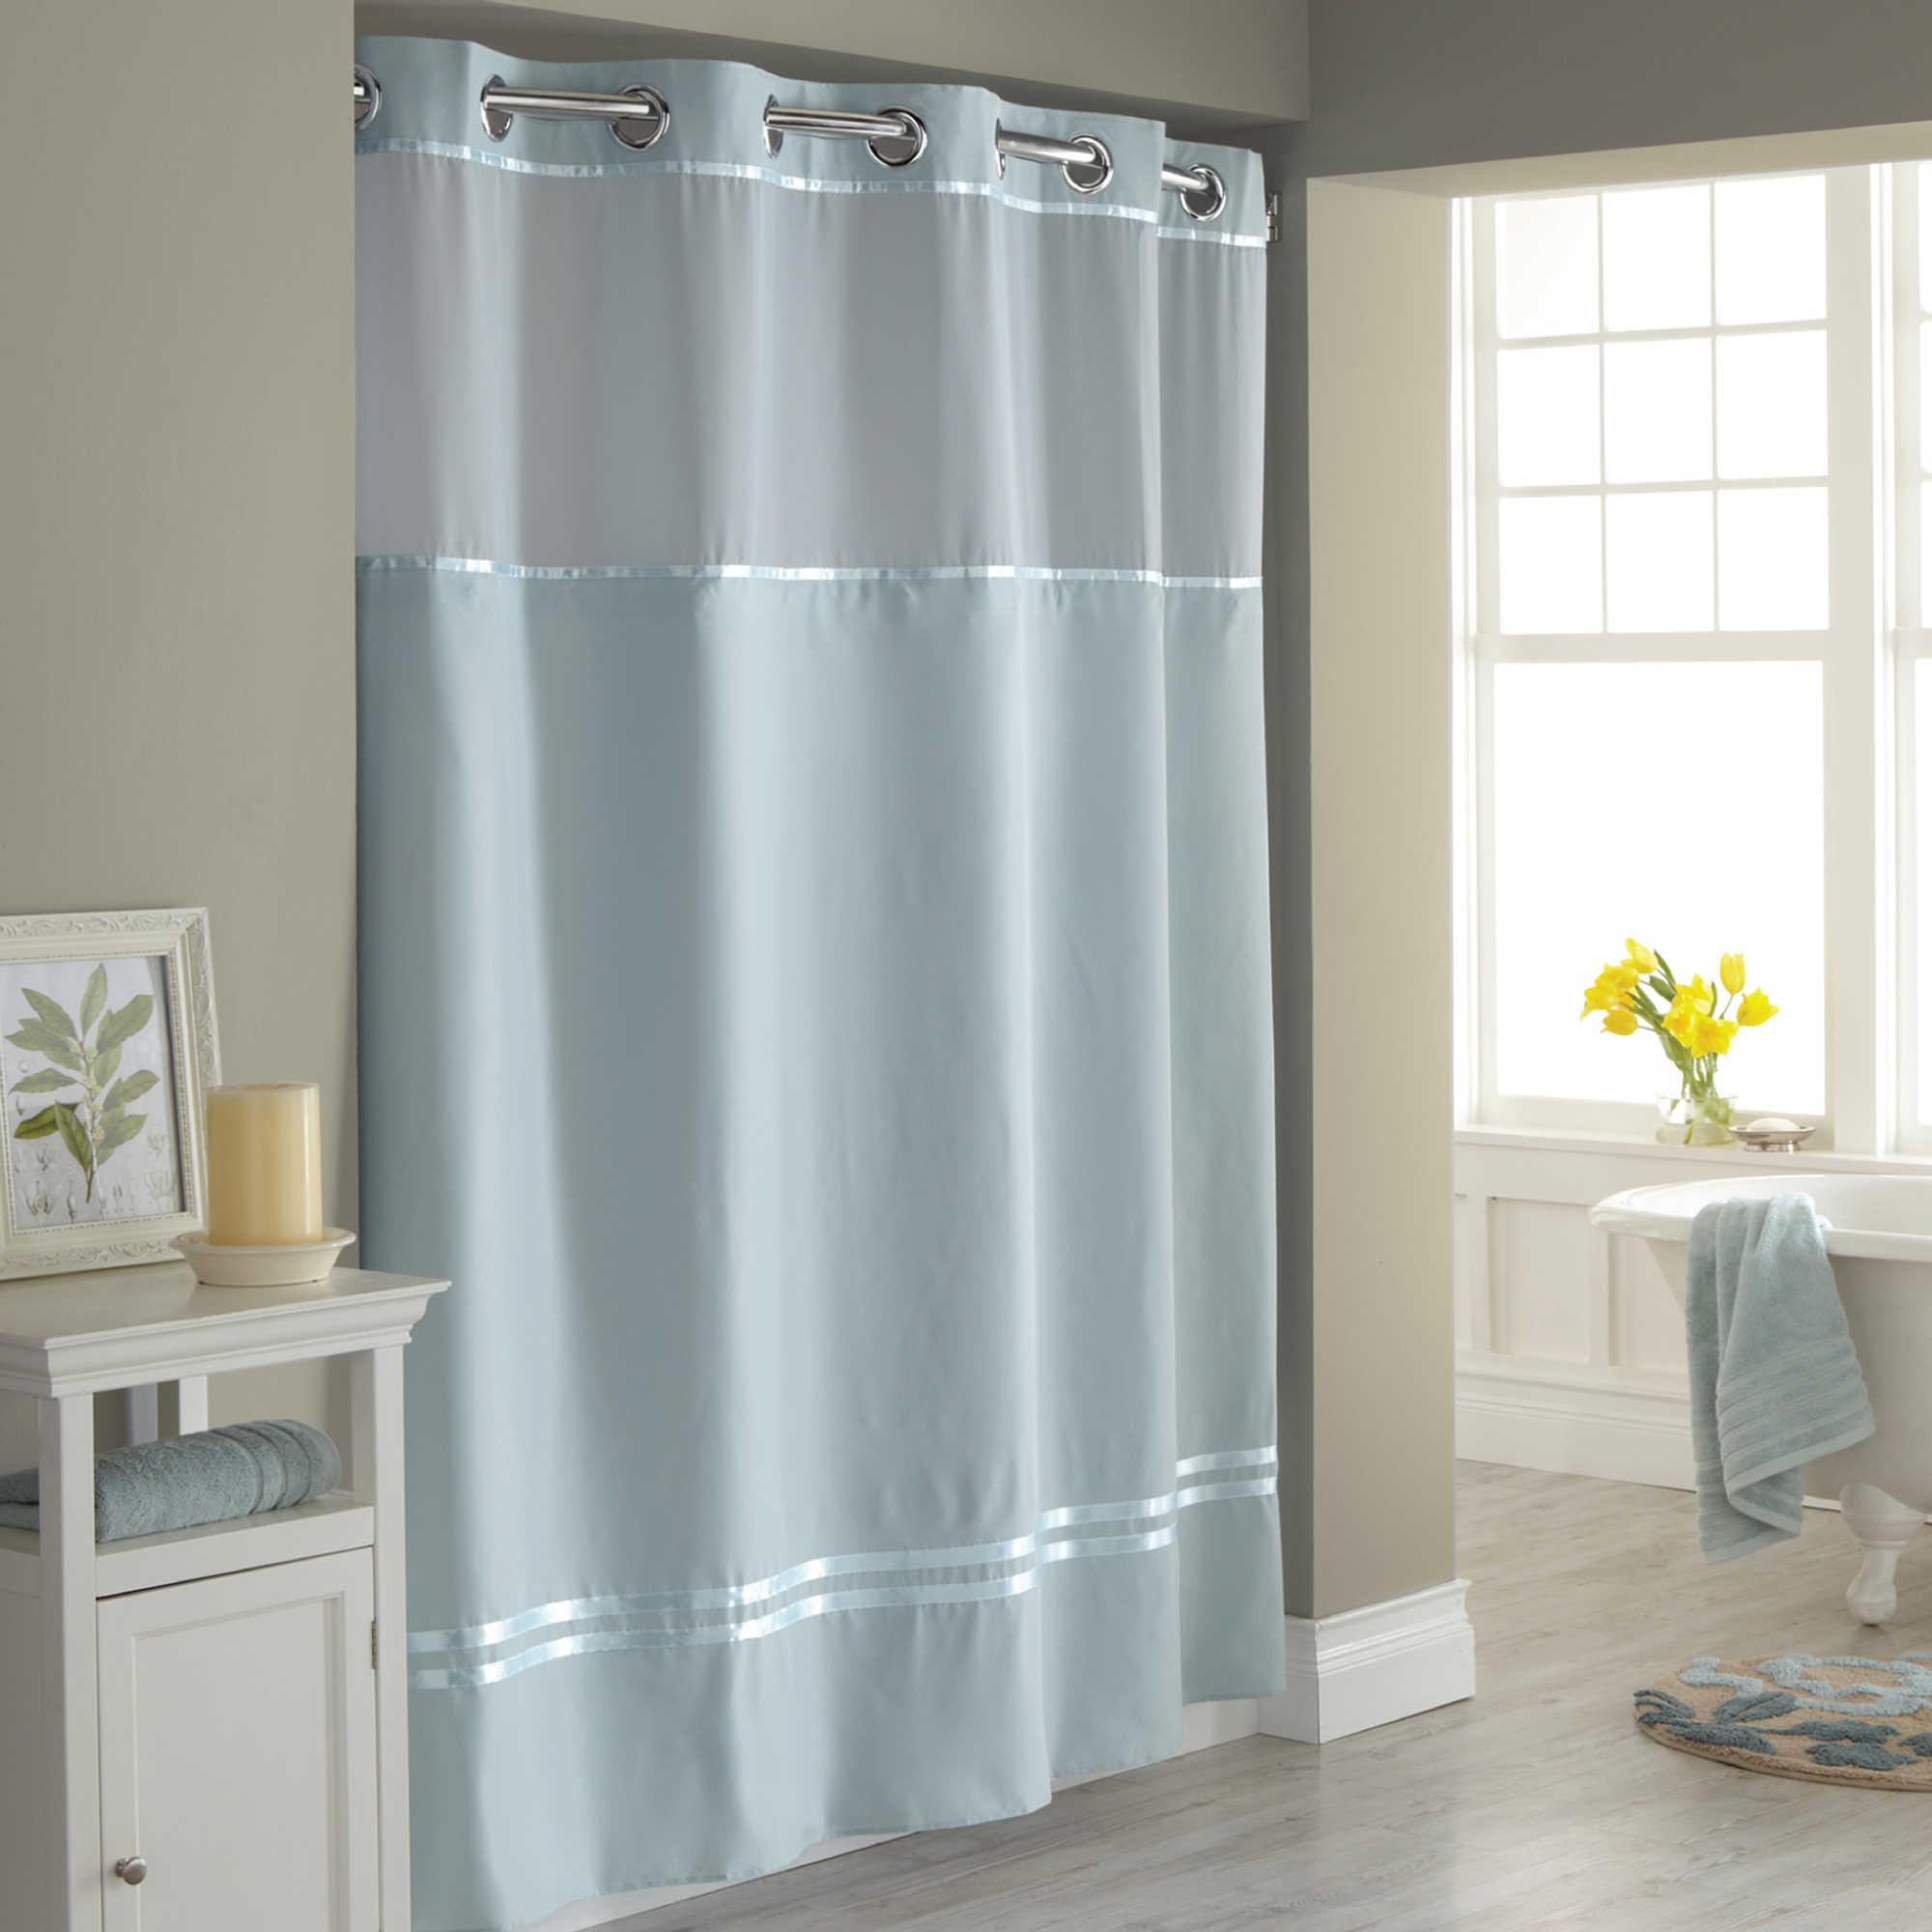 Shower Stall Curtain With Window • Shower Curtains Ideas